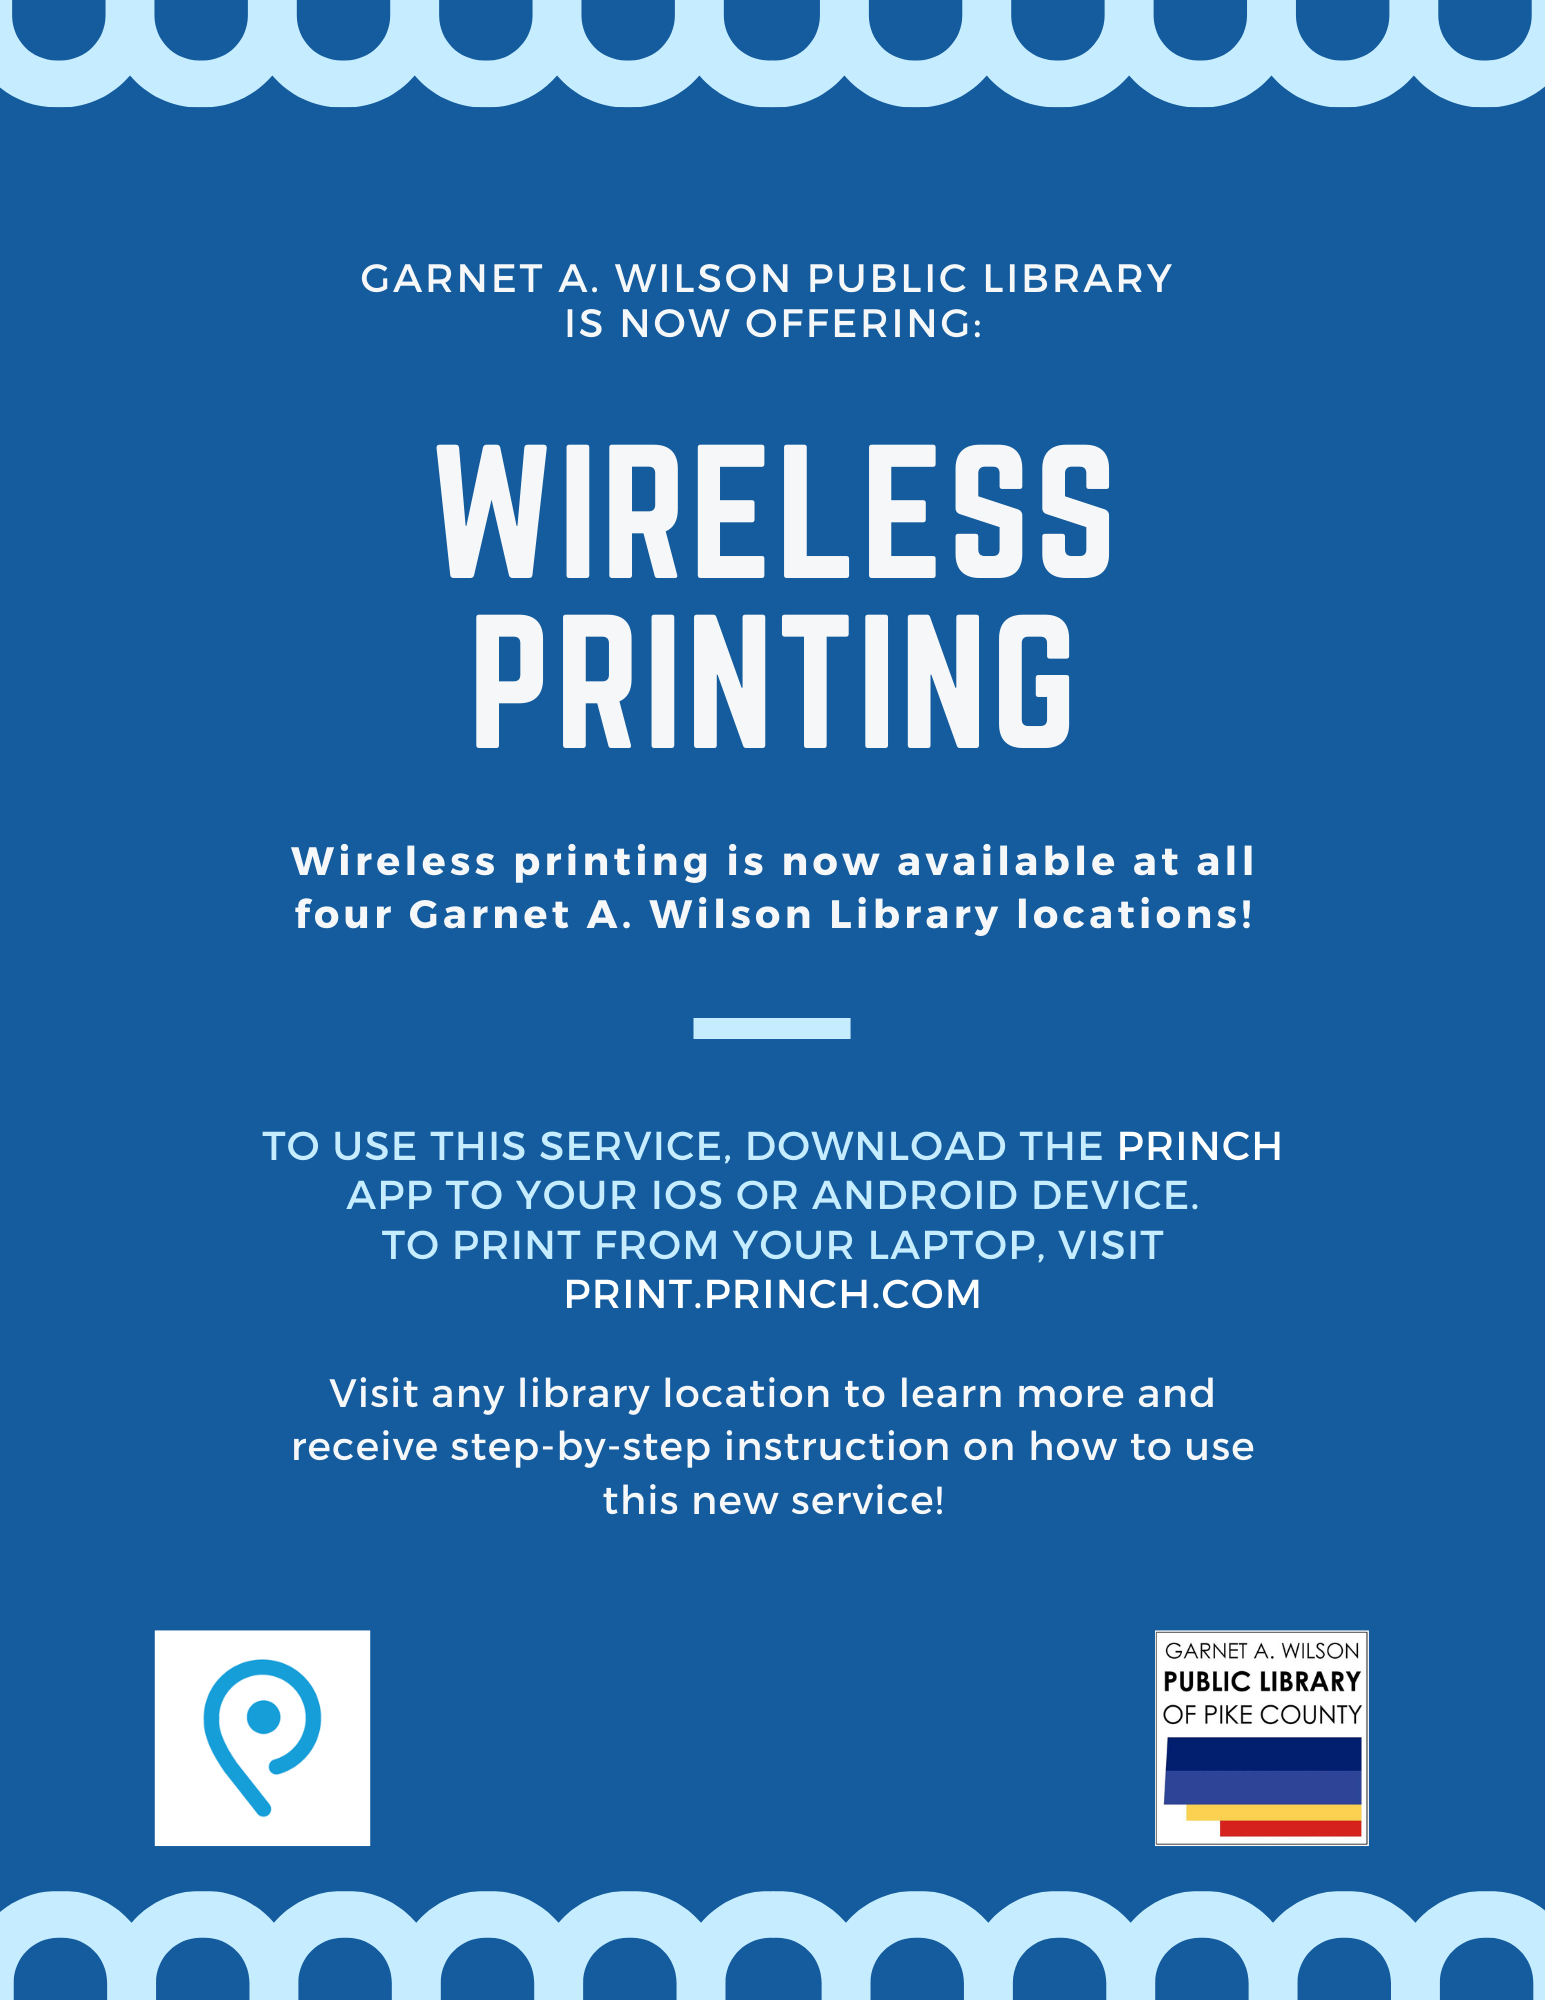 A flyer listing the information for the new wireless printing service at the library.